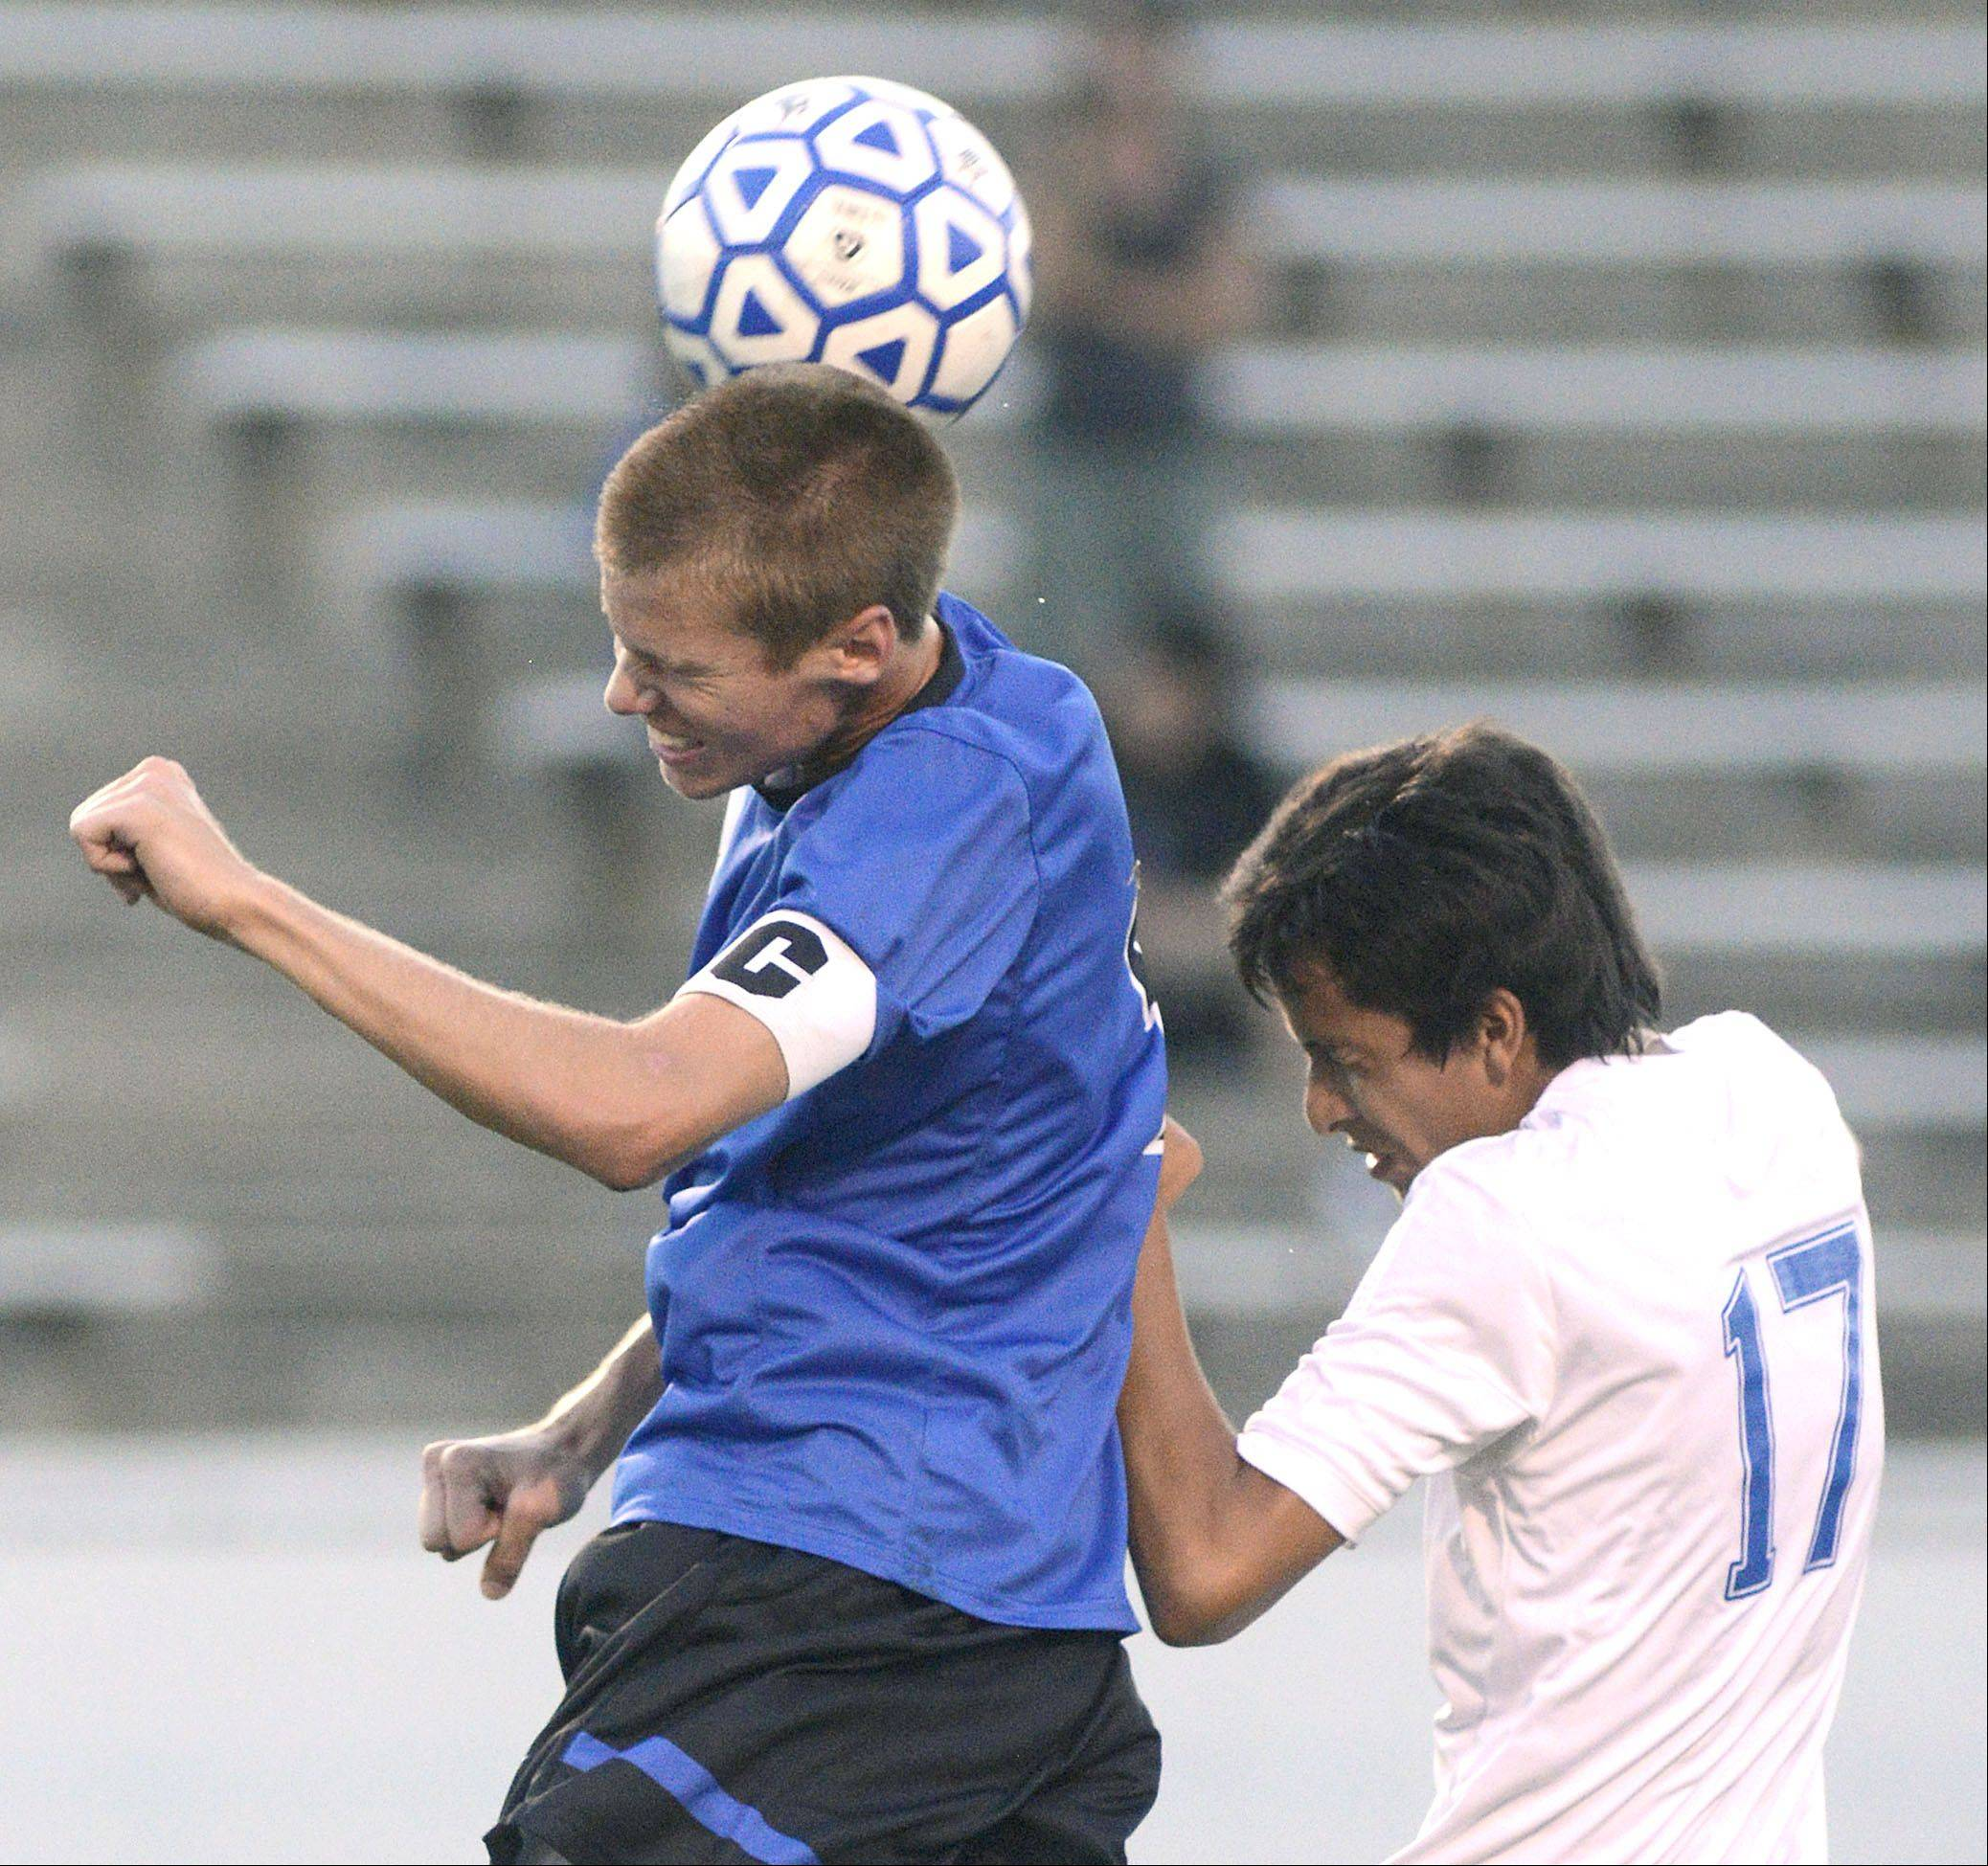 St. Charles North's Brad Johnson beats Larkin's Freddy Jungo to the ball, redirecting it, in the first half on Tuesday at Memorial Field in Elgin.